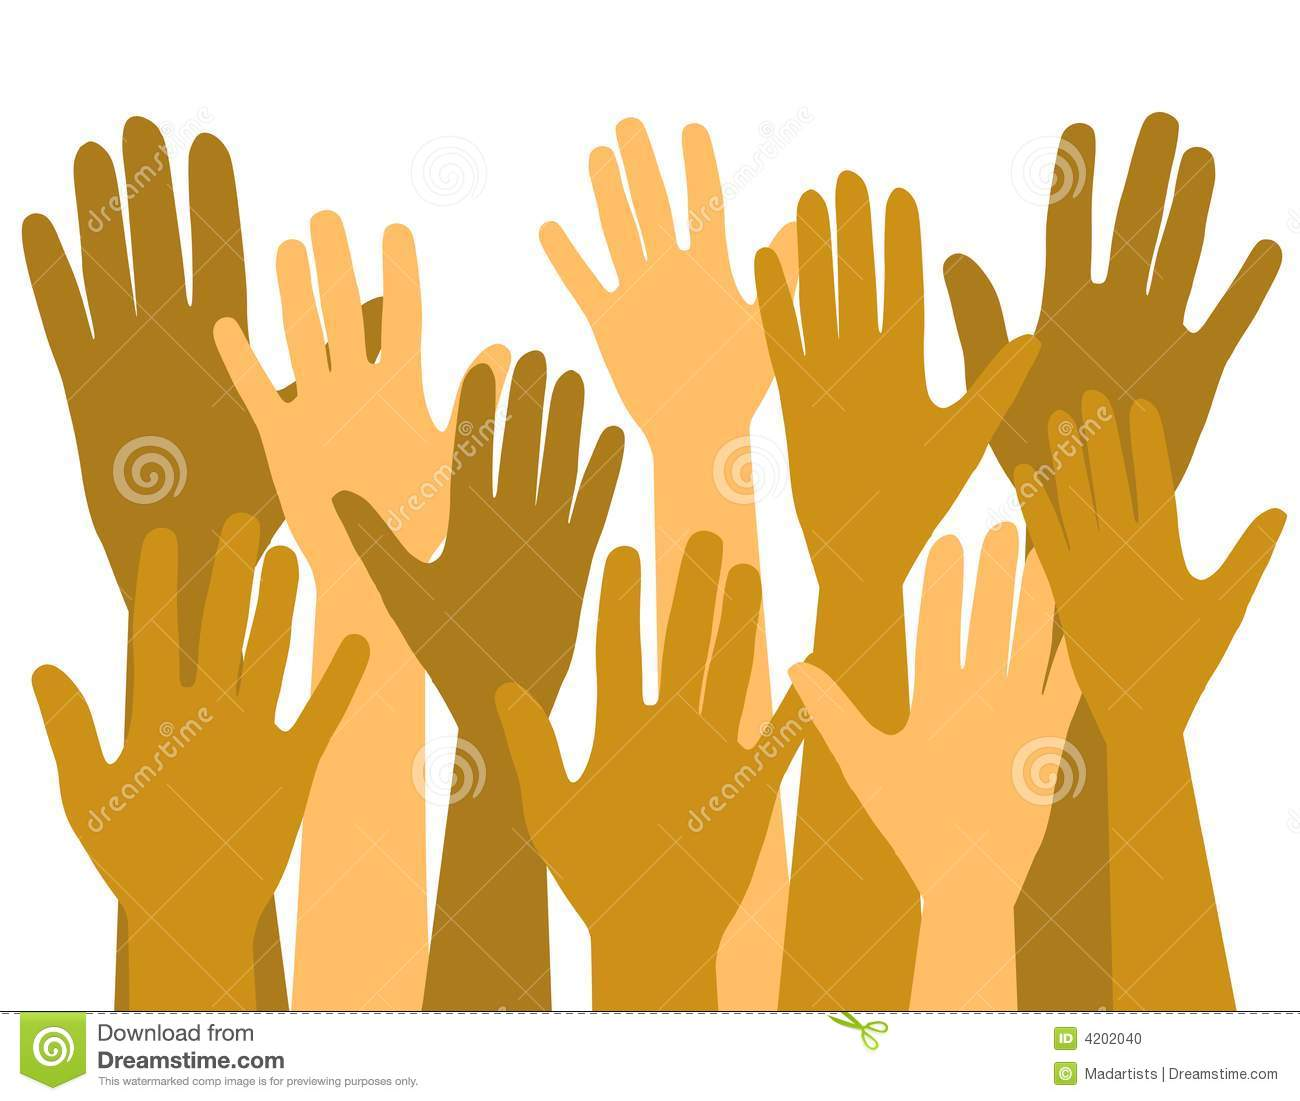 Voting clipart hand. Hands up in the